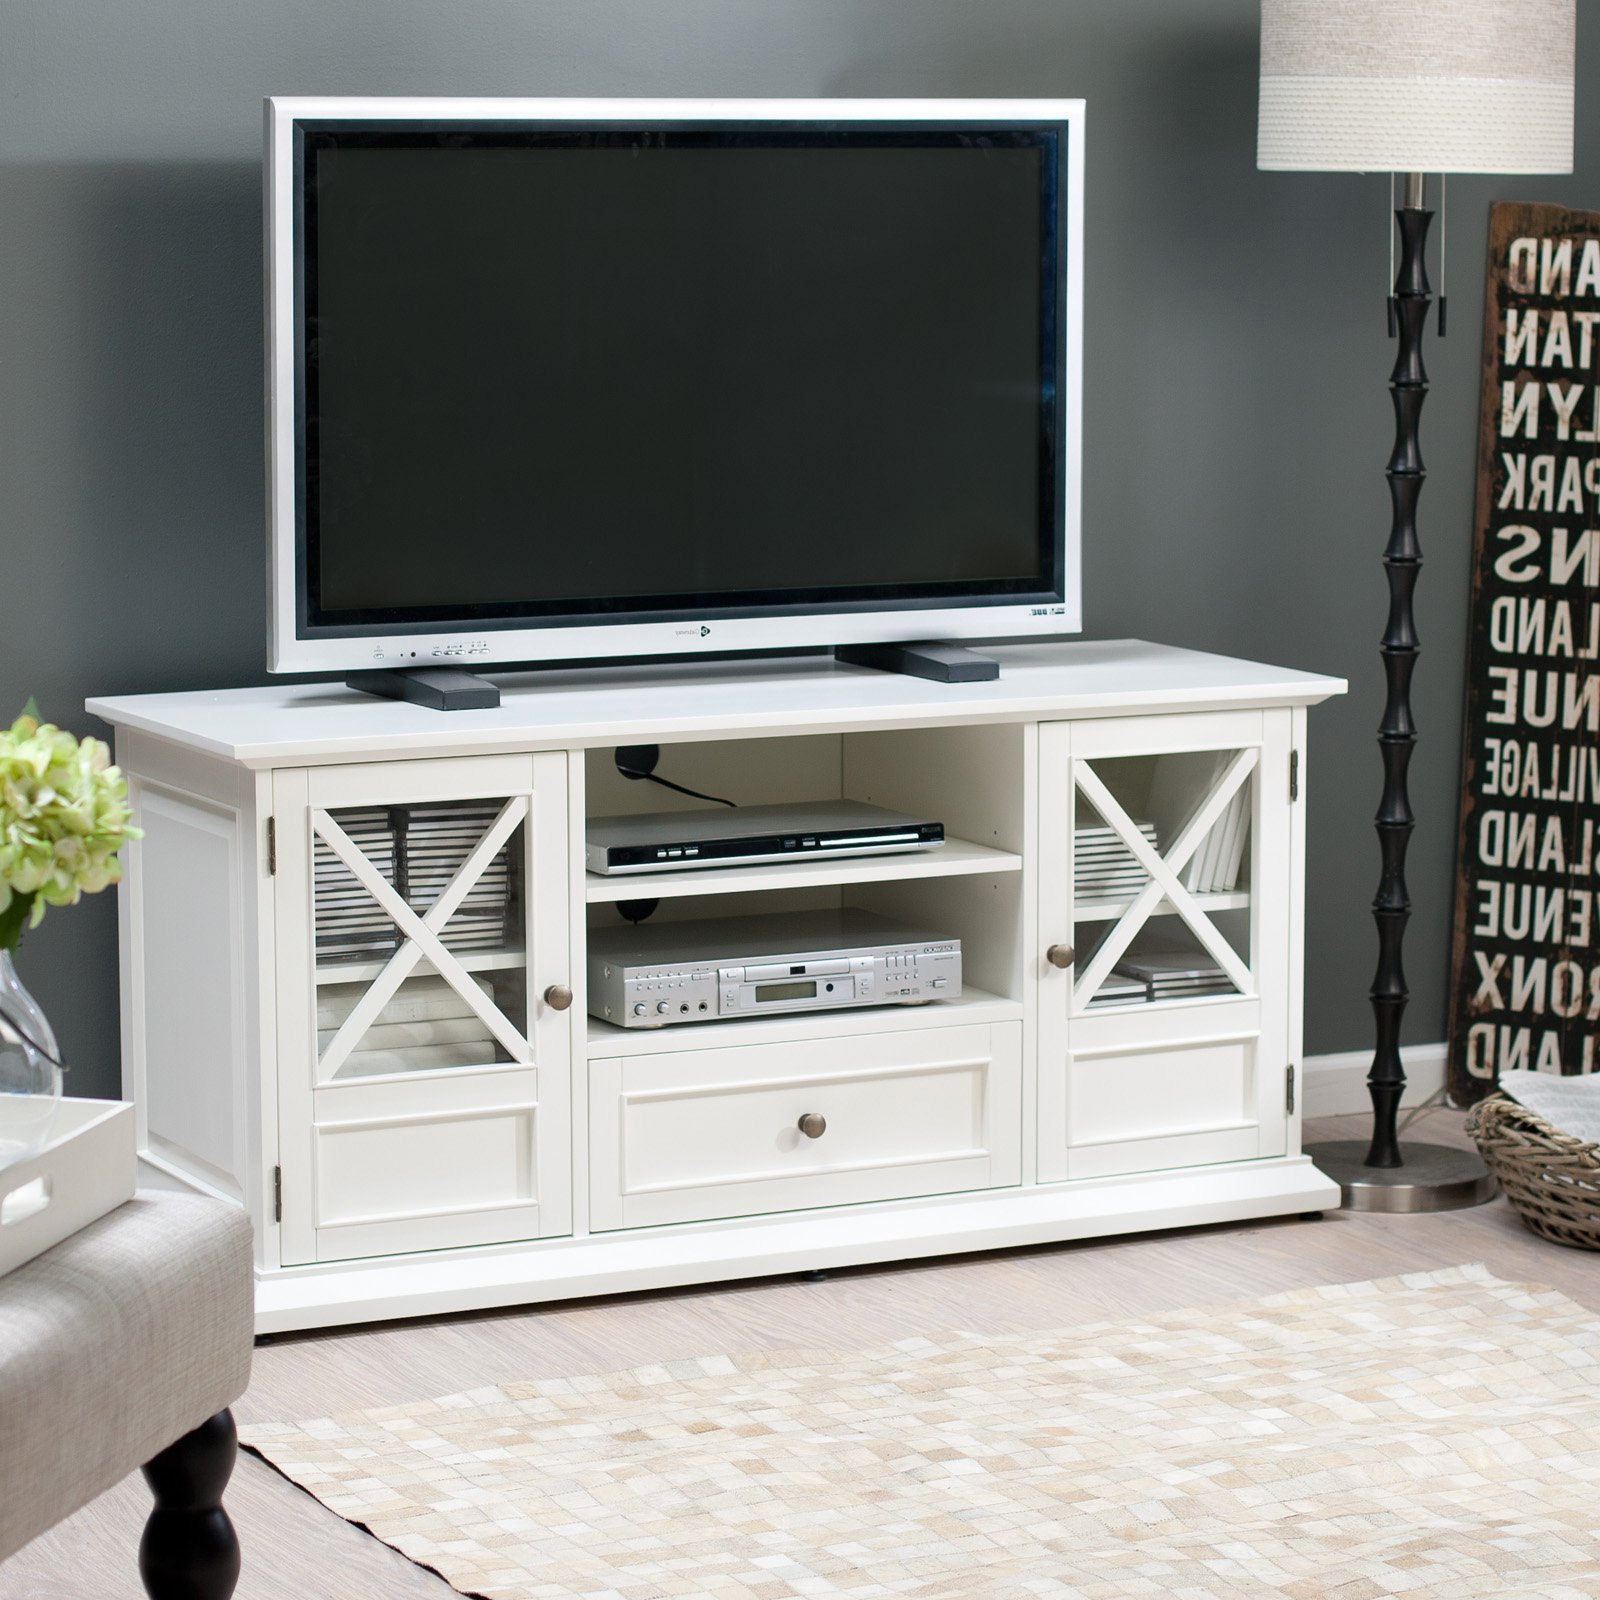 Current Belham Living Hampton Tv Stand – White – Walmart Throughout Country Style Tv Stands (View 11 of 20)